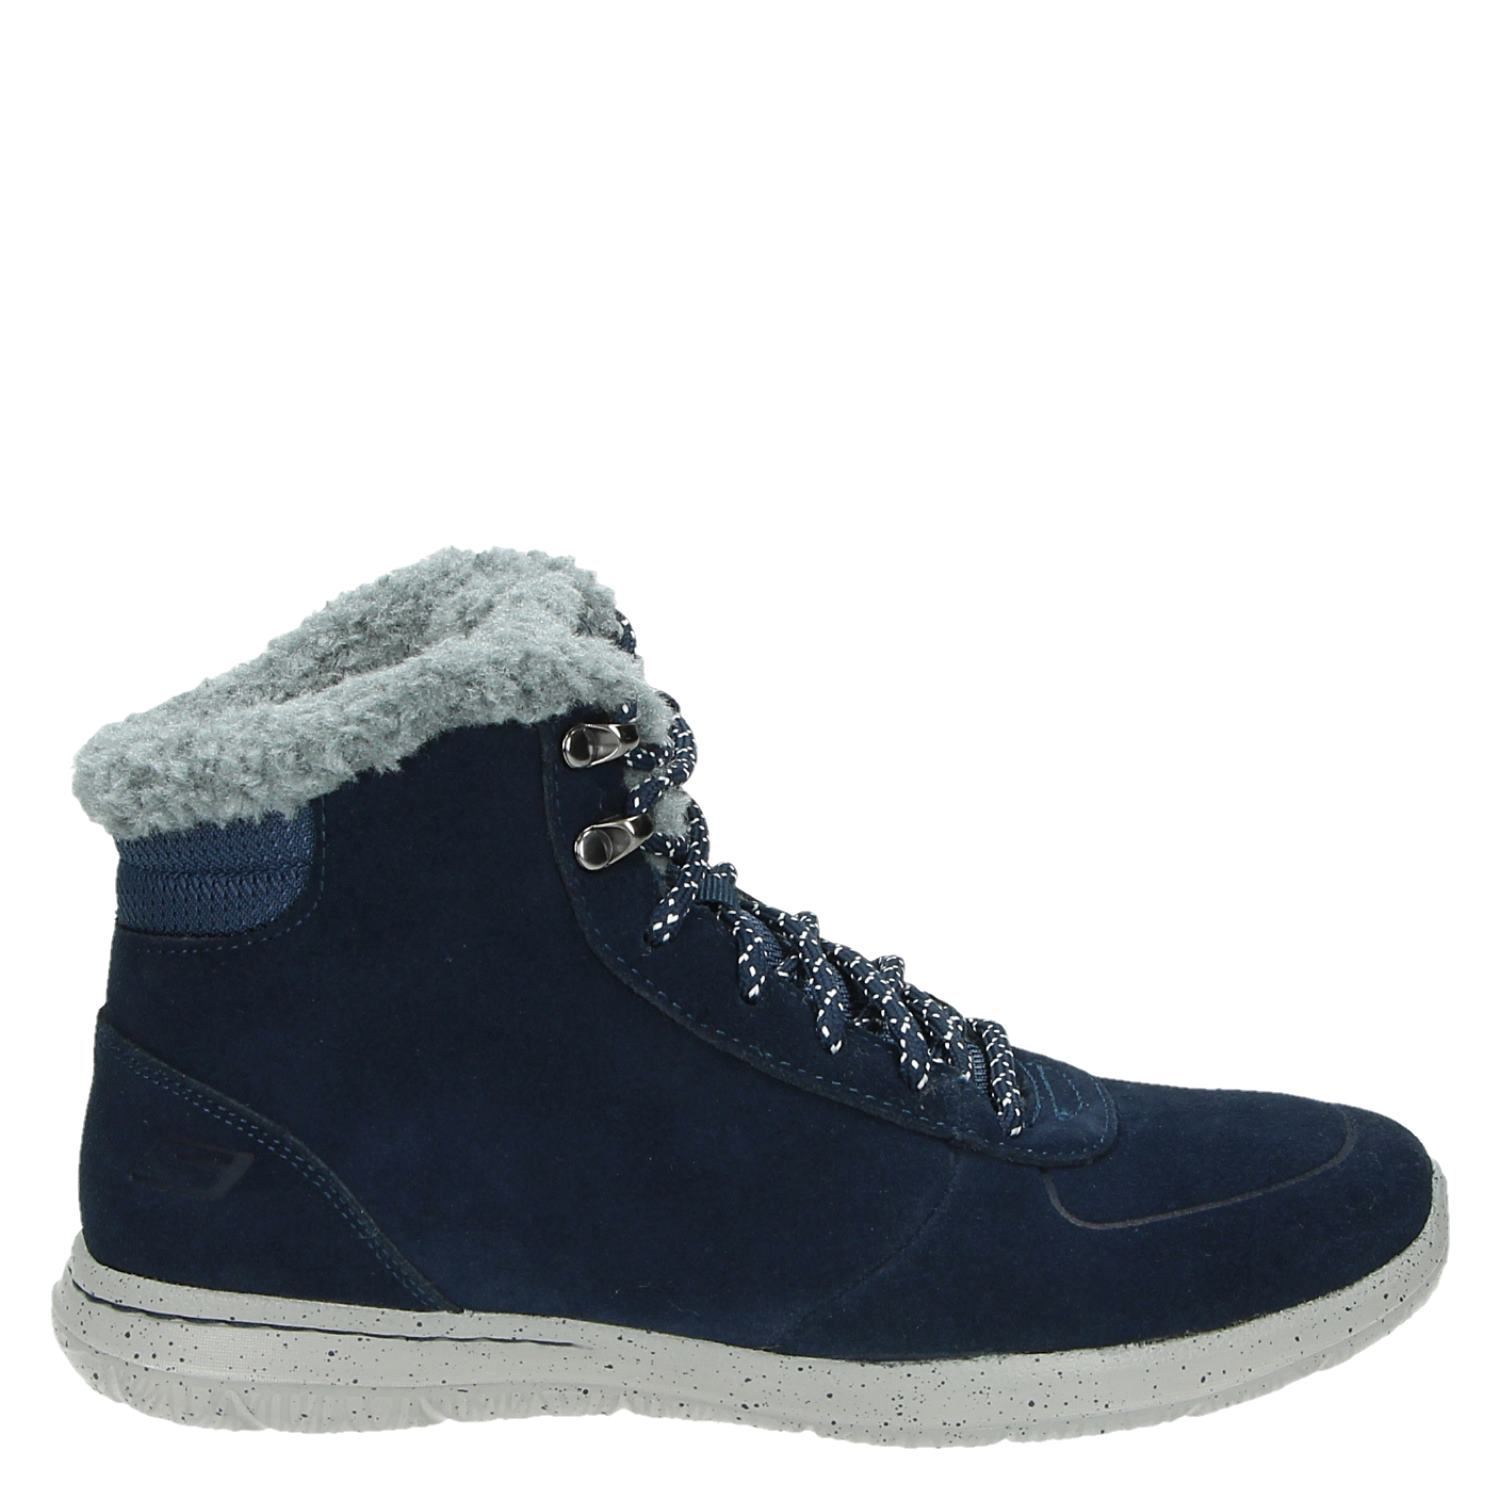 Skechers Dames Skechers Dames Veterboots Blauw